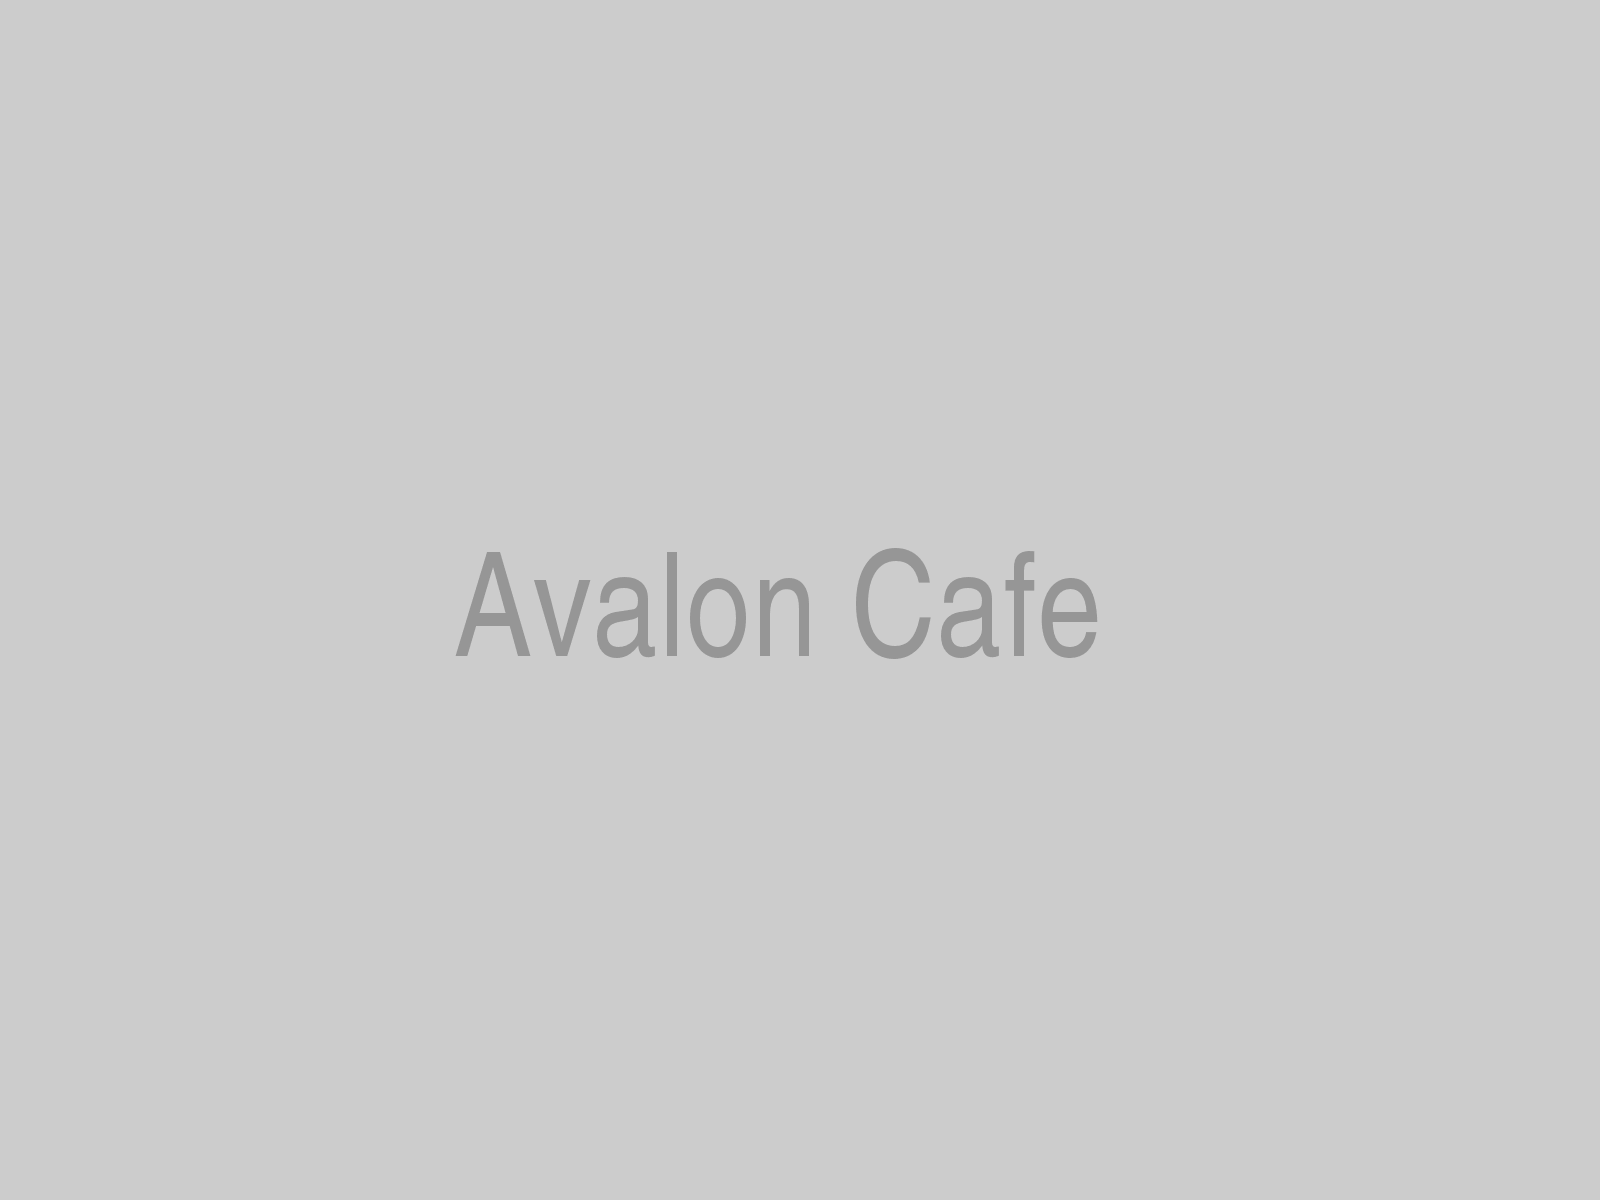 Avalon Cafe